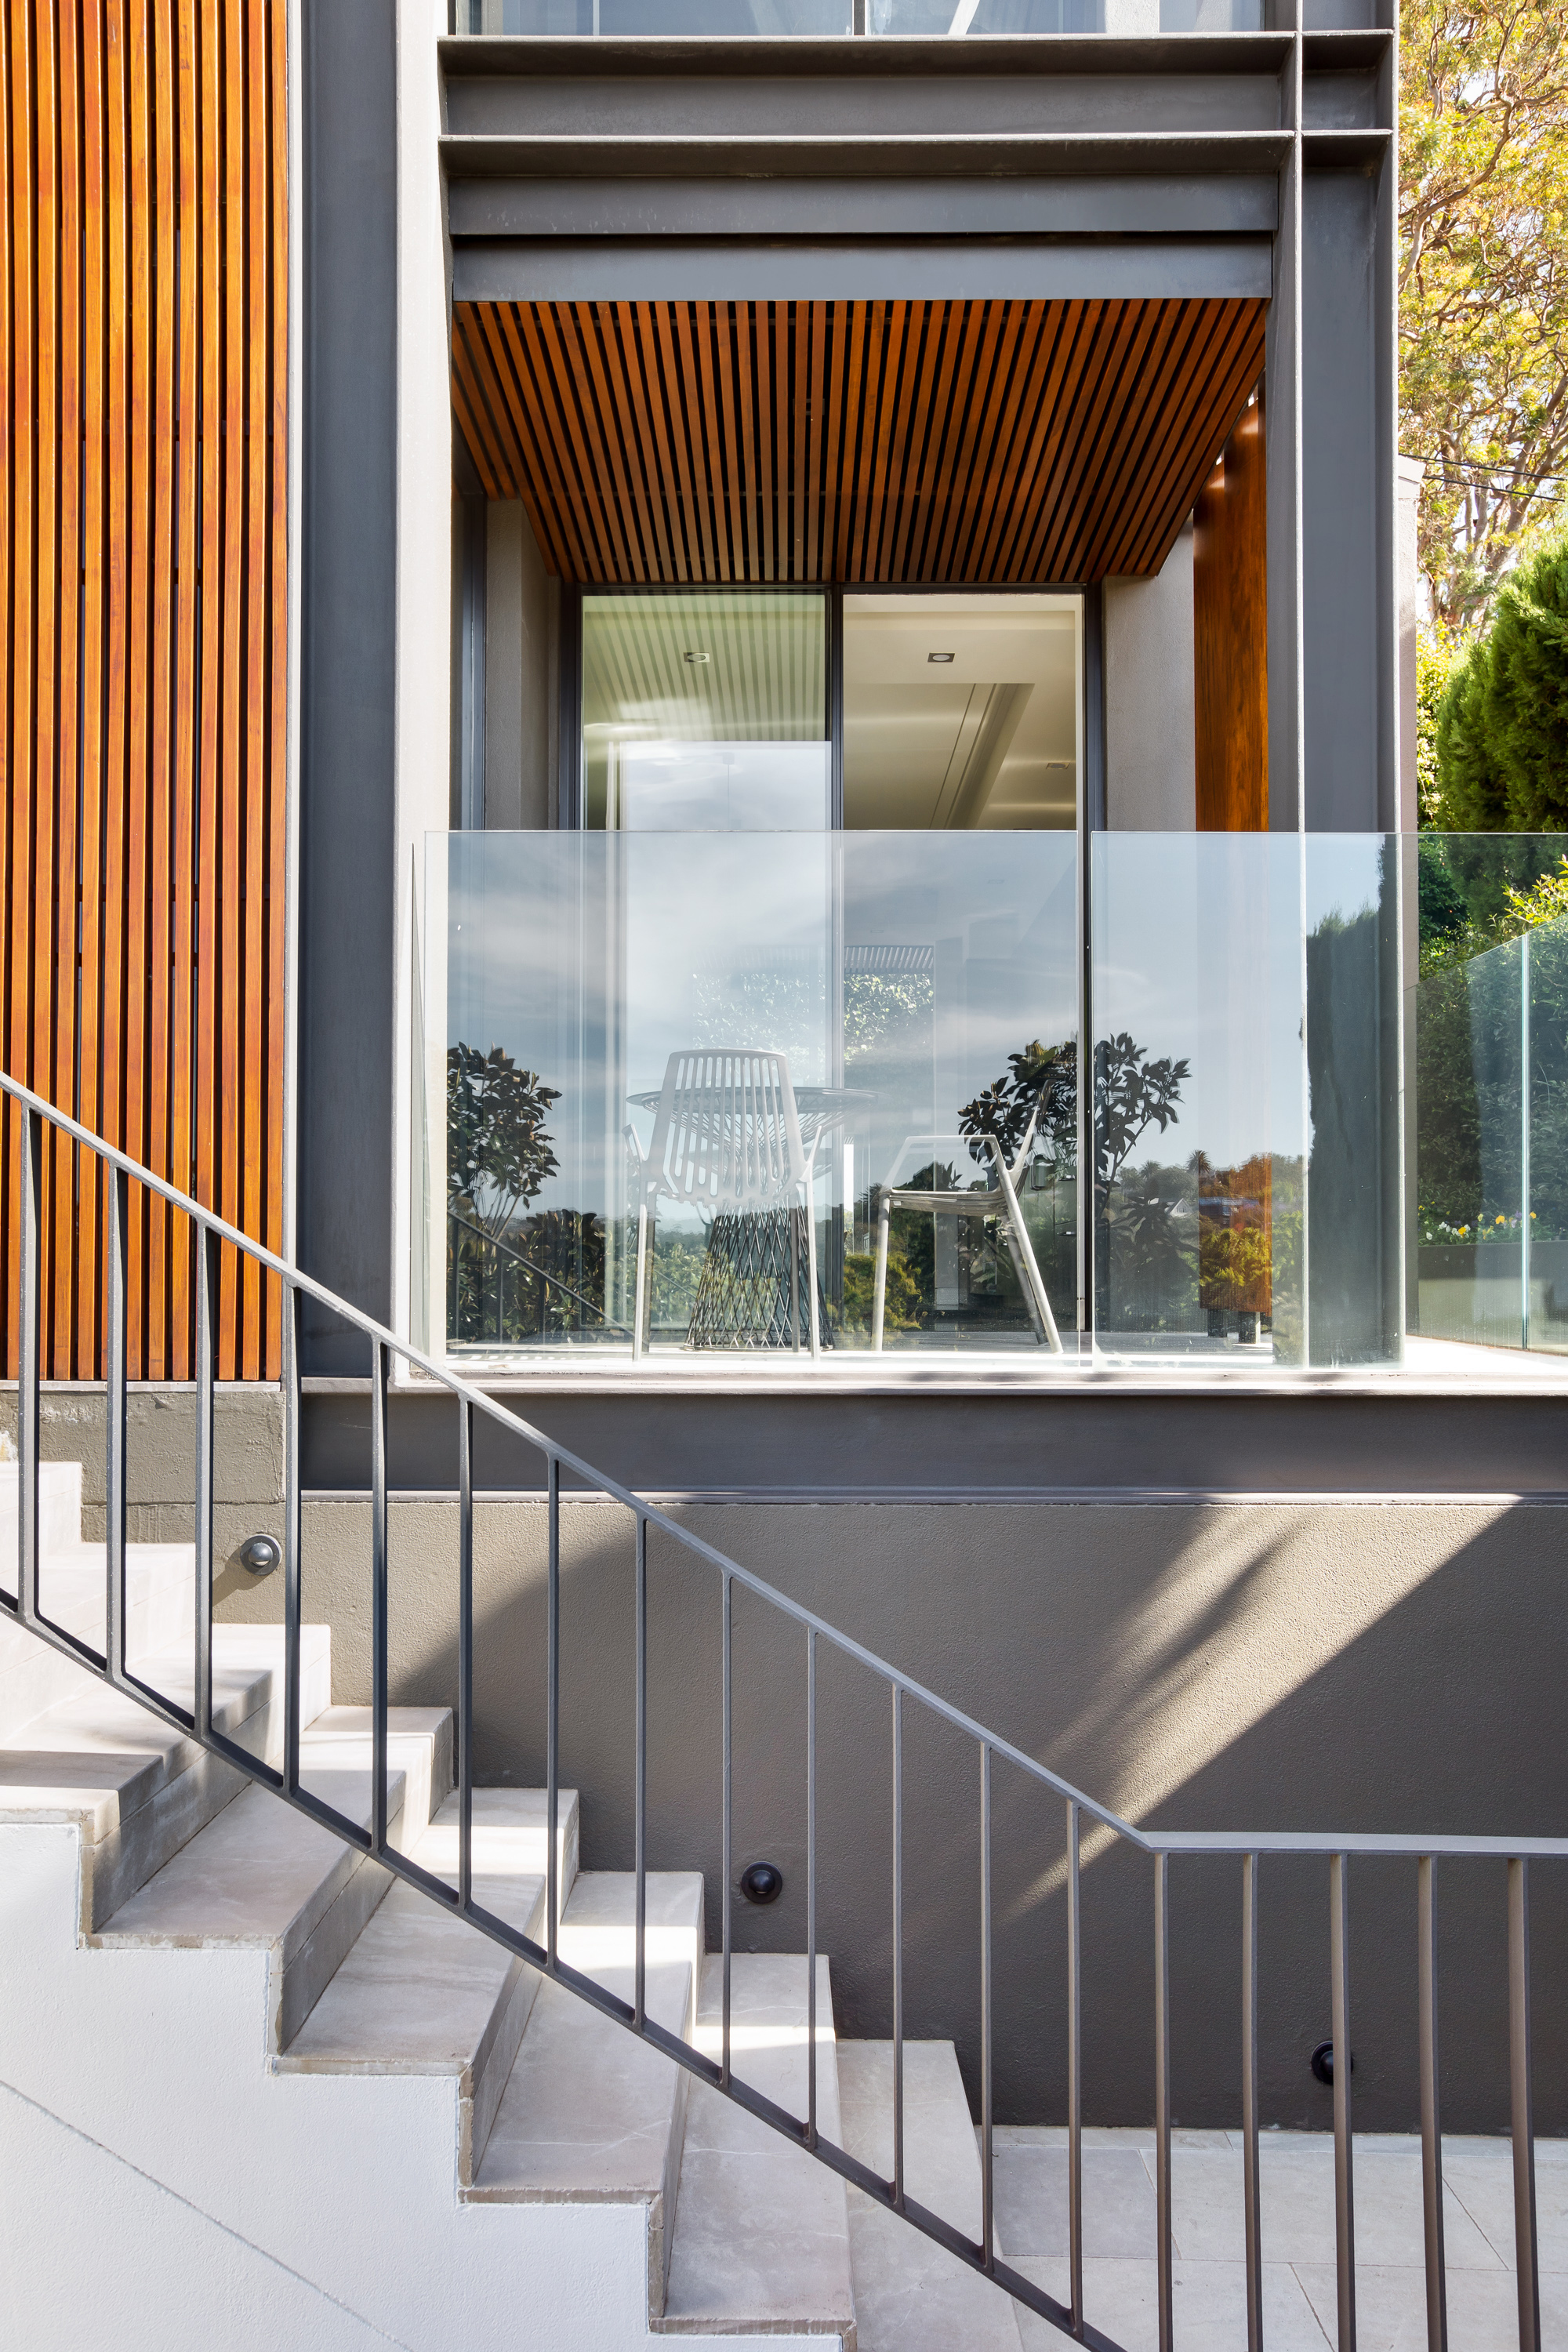 Hopetoun-Ave-25-Mosman-Detail 1.jpg